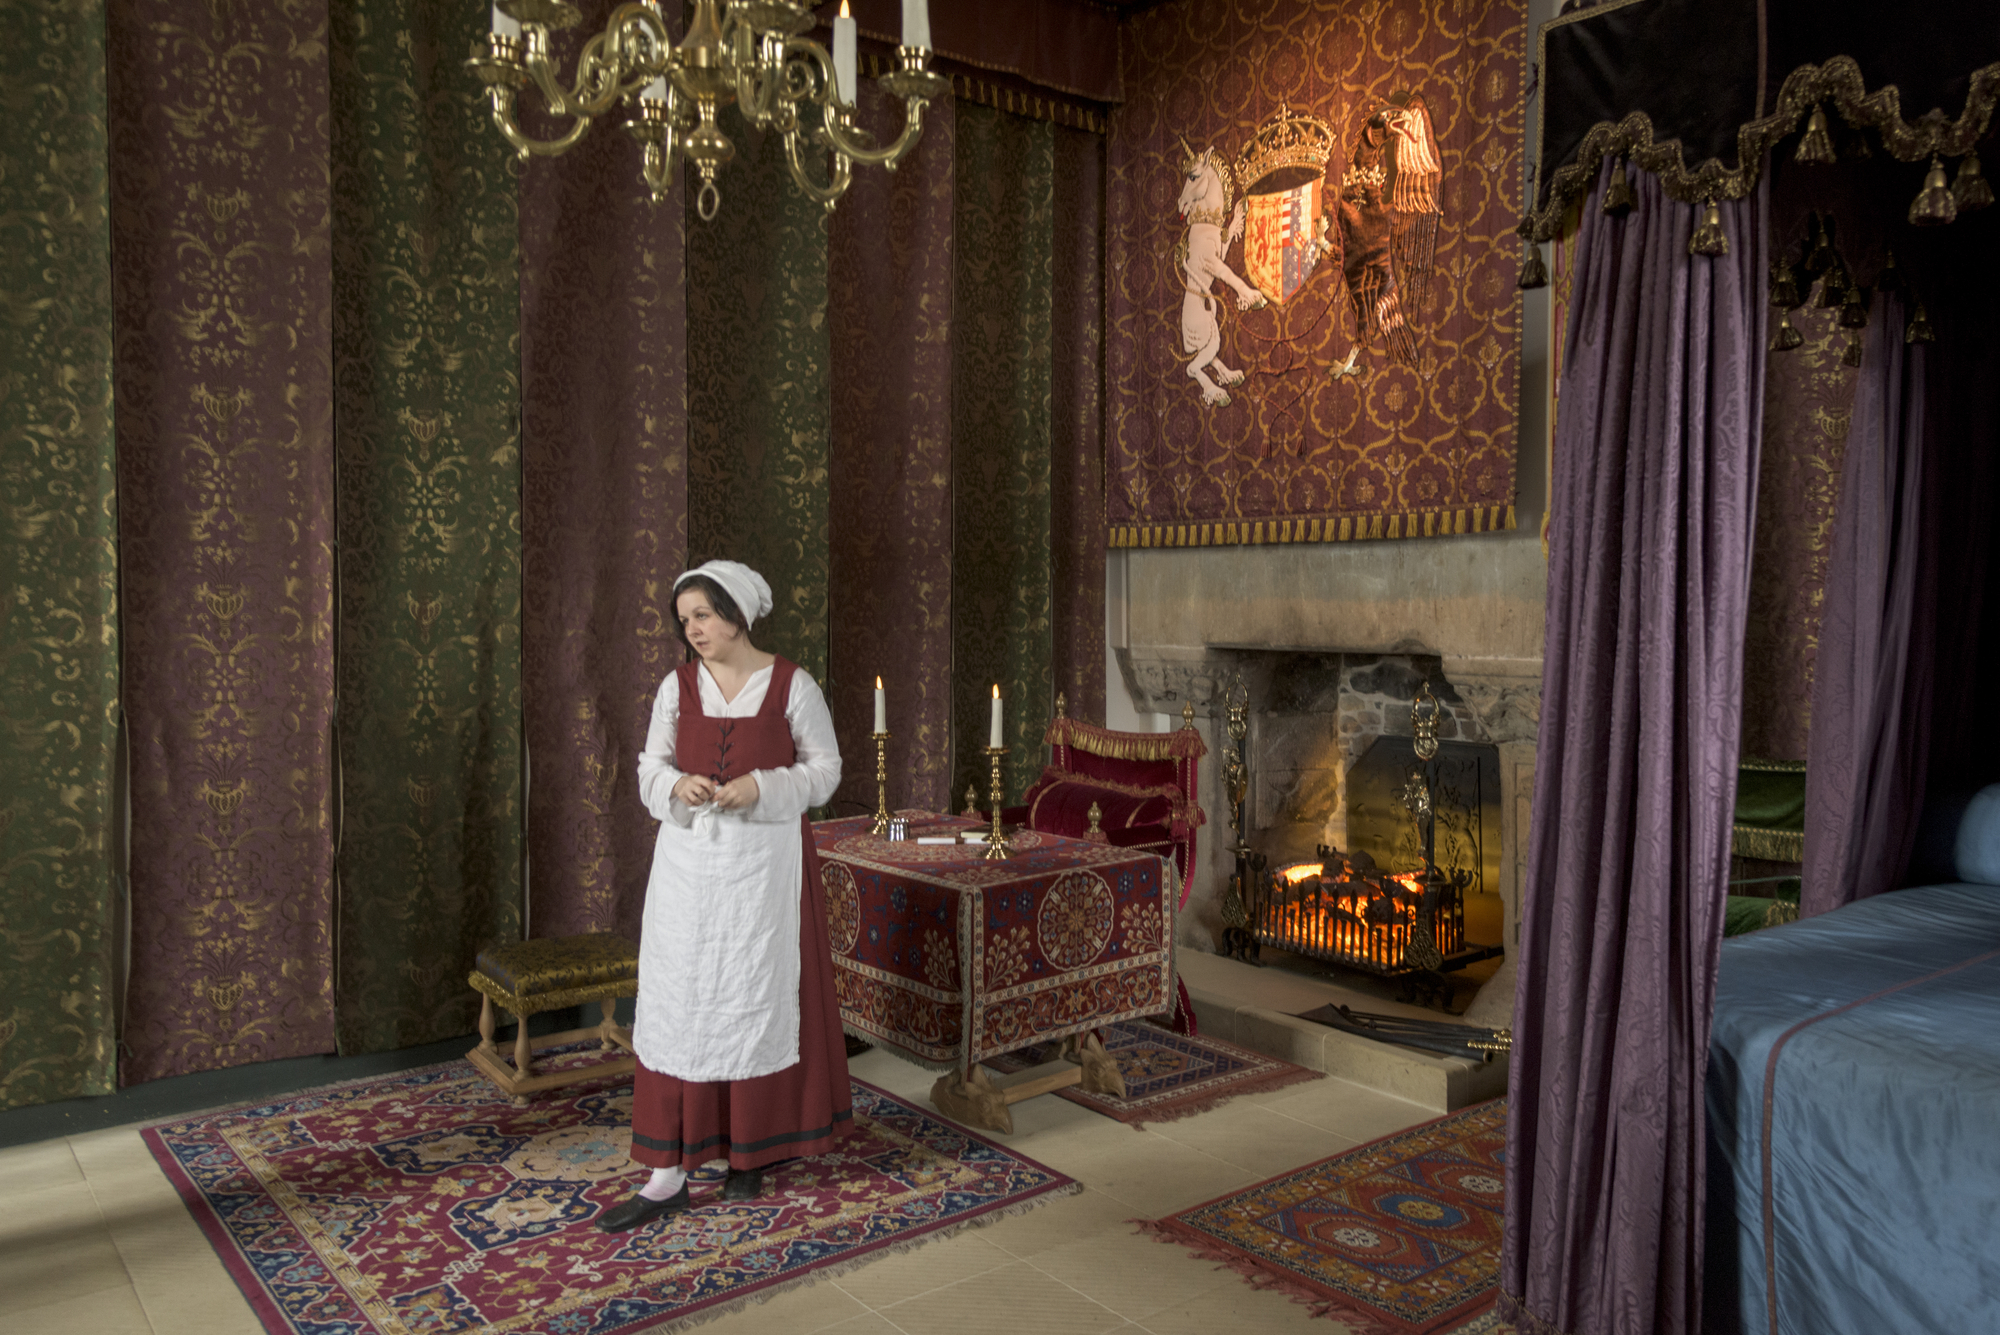 Historical places in Scotland you cannot miss: Stirling Castle